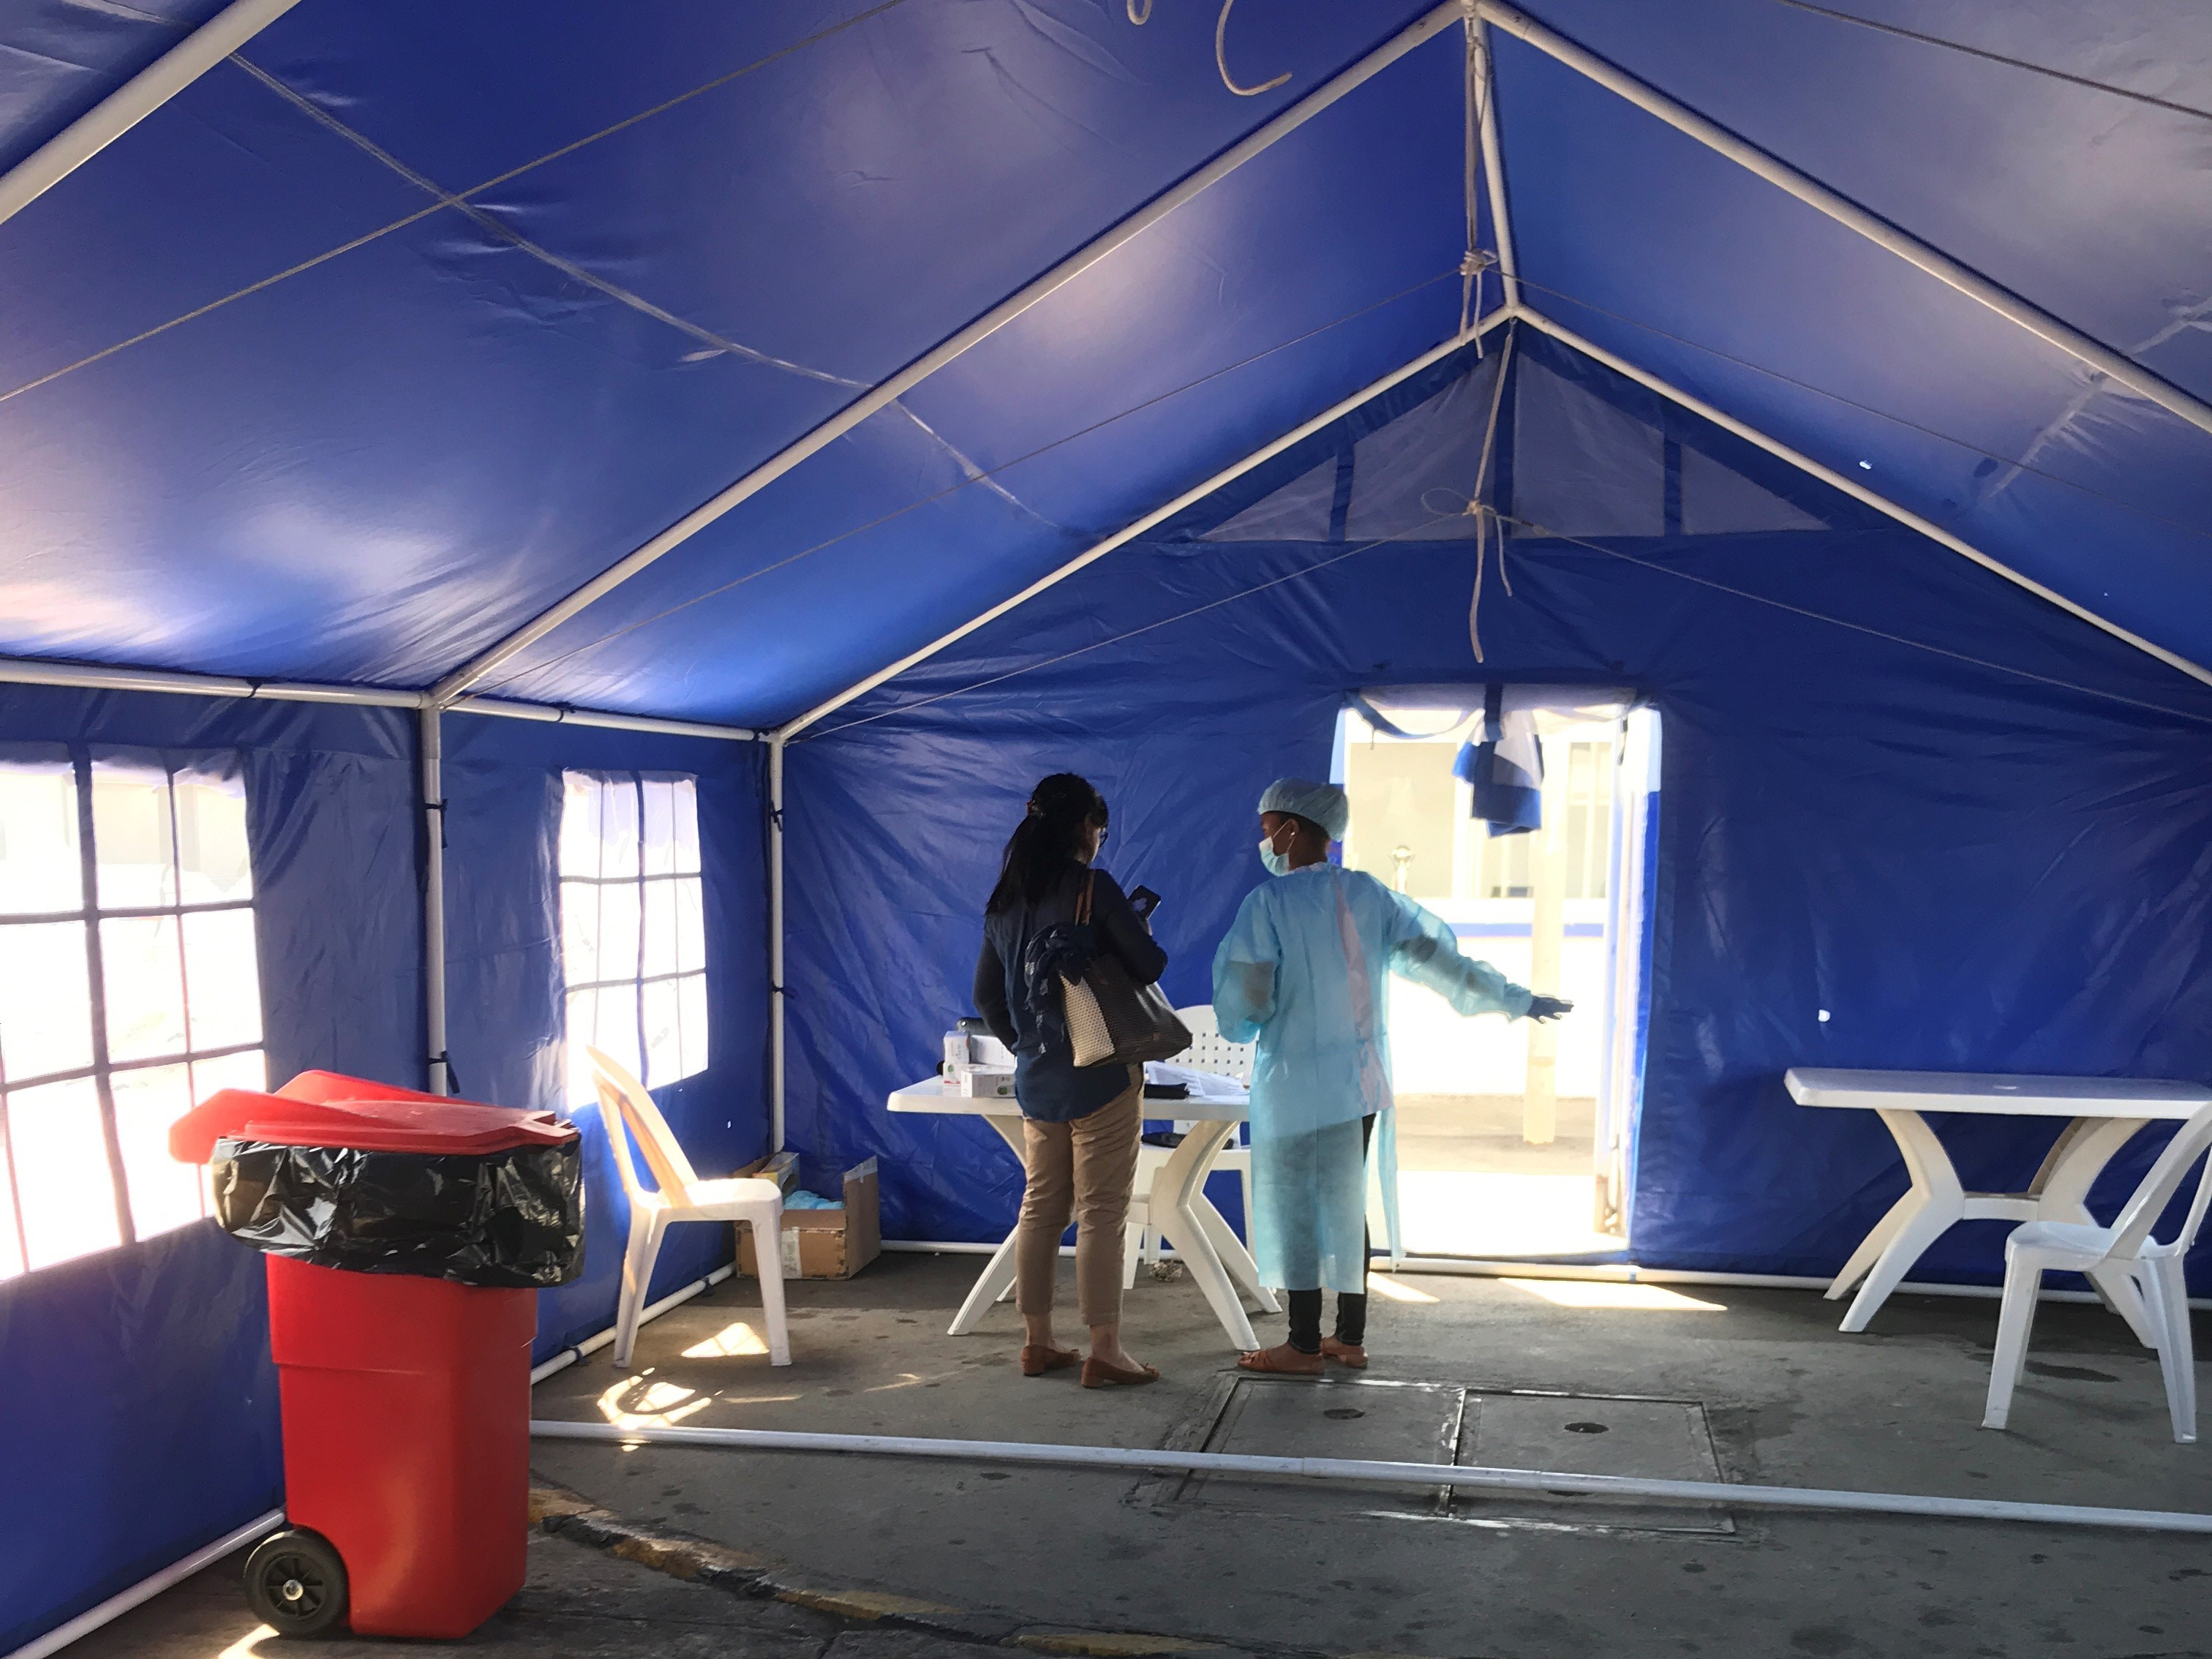 Blue tent with a red biowaste bin and a woman speaking with a person suited up in personal protective equipment.